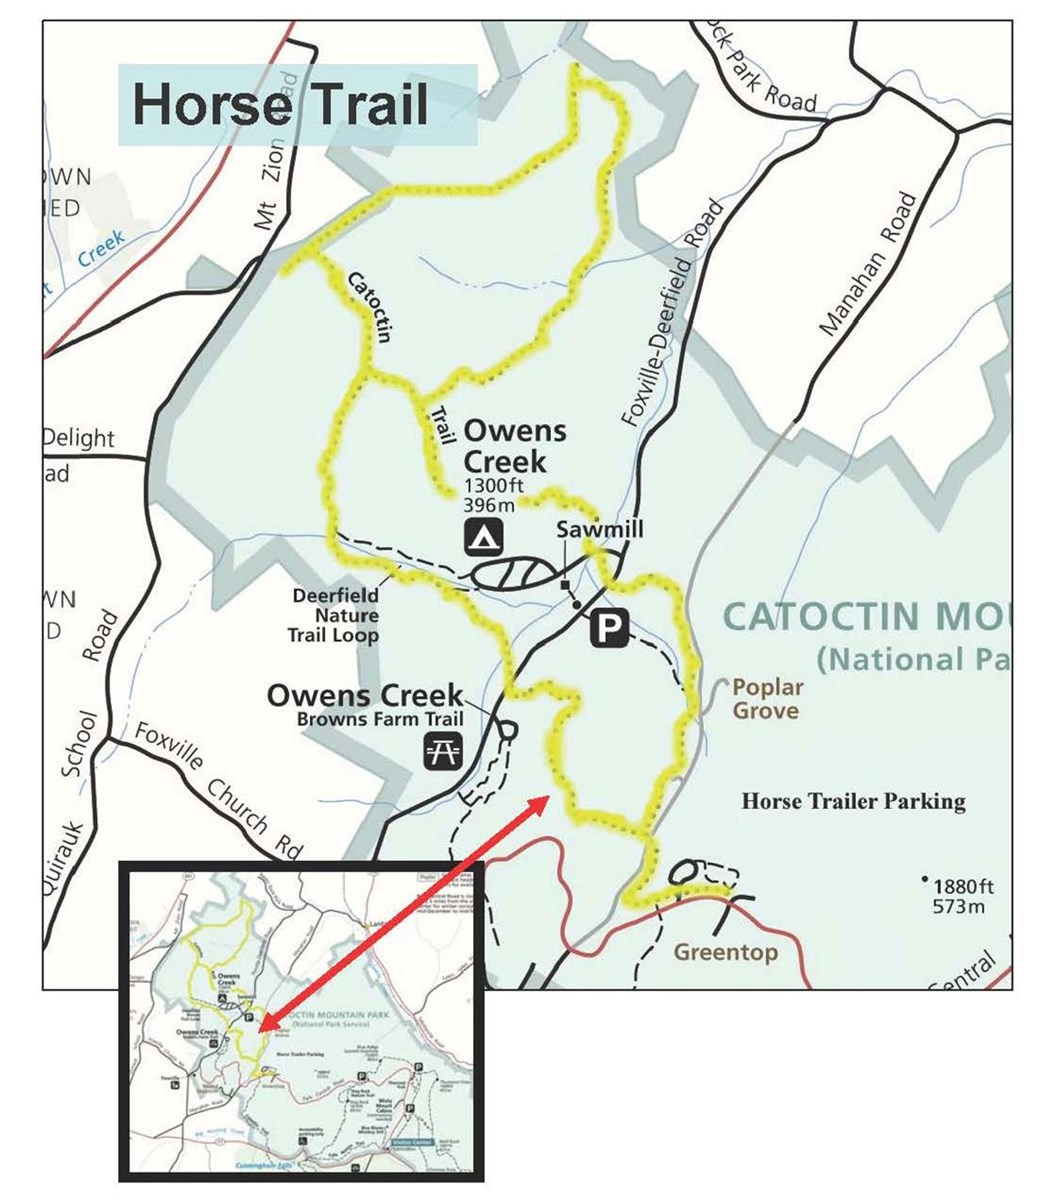 Image of Horse Trail Map